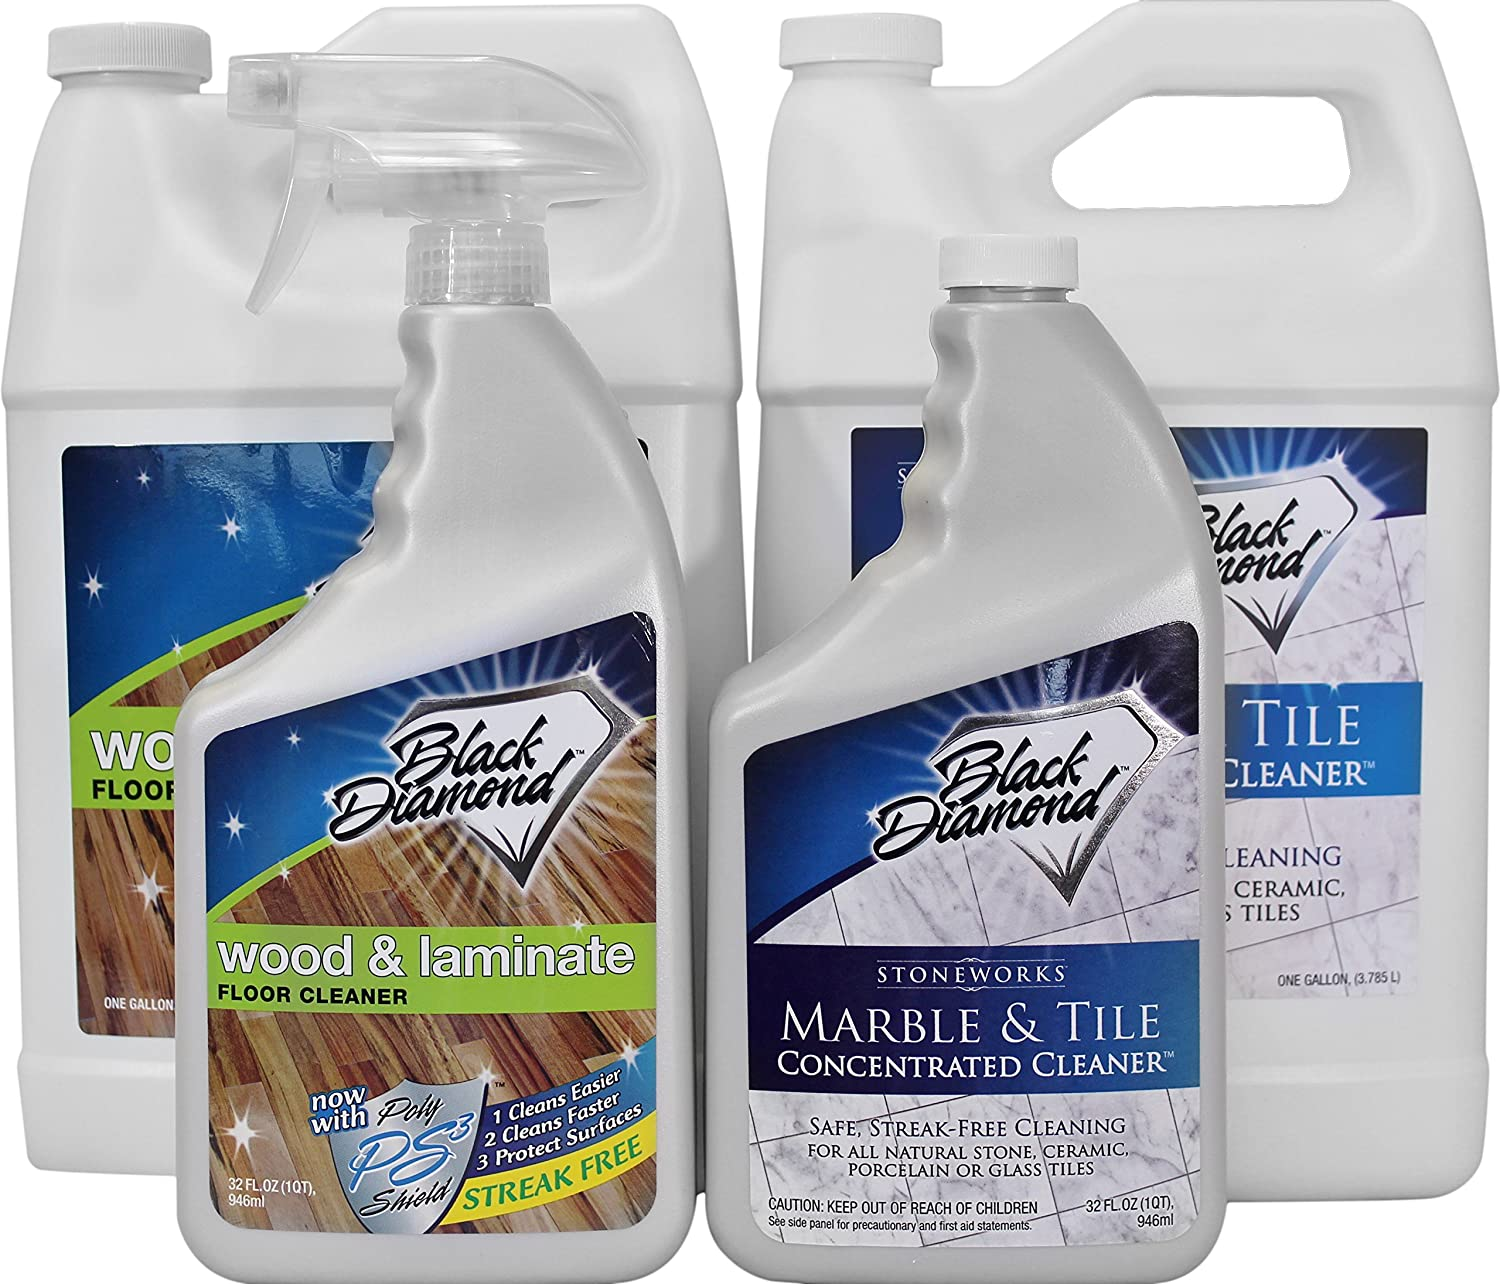 Amazon black diamond wood laminate floor cleaner 1 gallon amazon black diamond wood laminate floor cleaner 1 gallon for hardwood real natural engineered flooring biodegradable safe for cleaning all dailygadgetfo Gallery